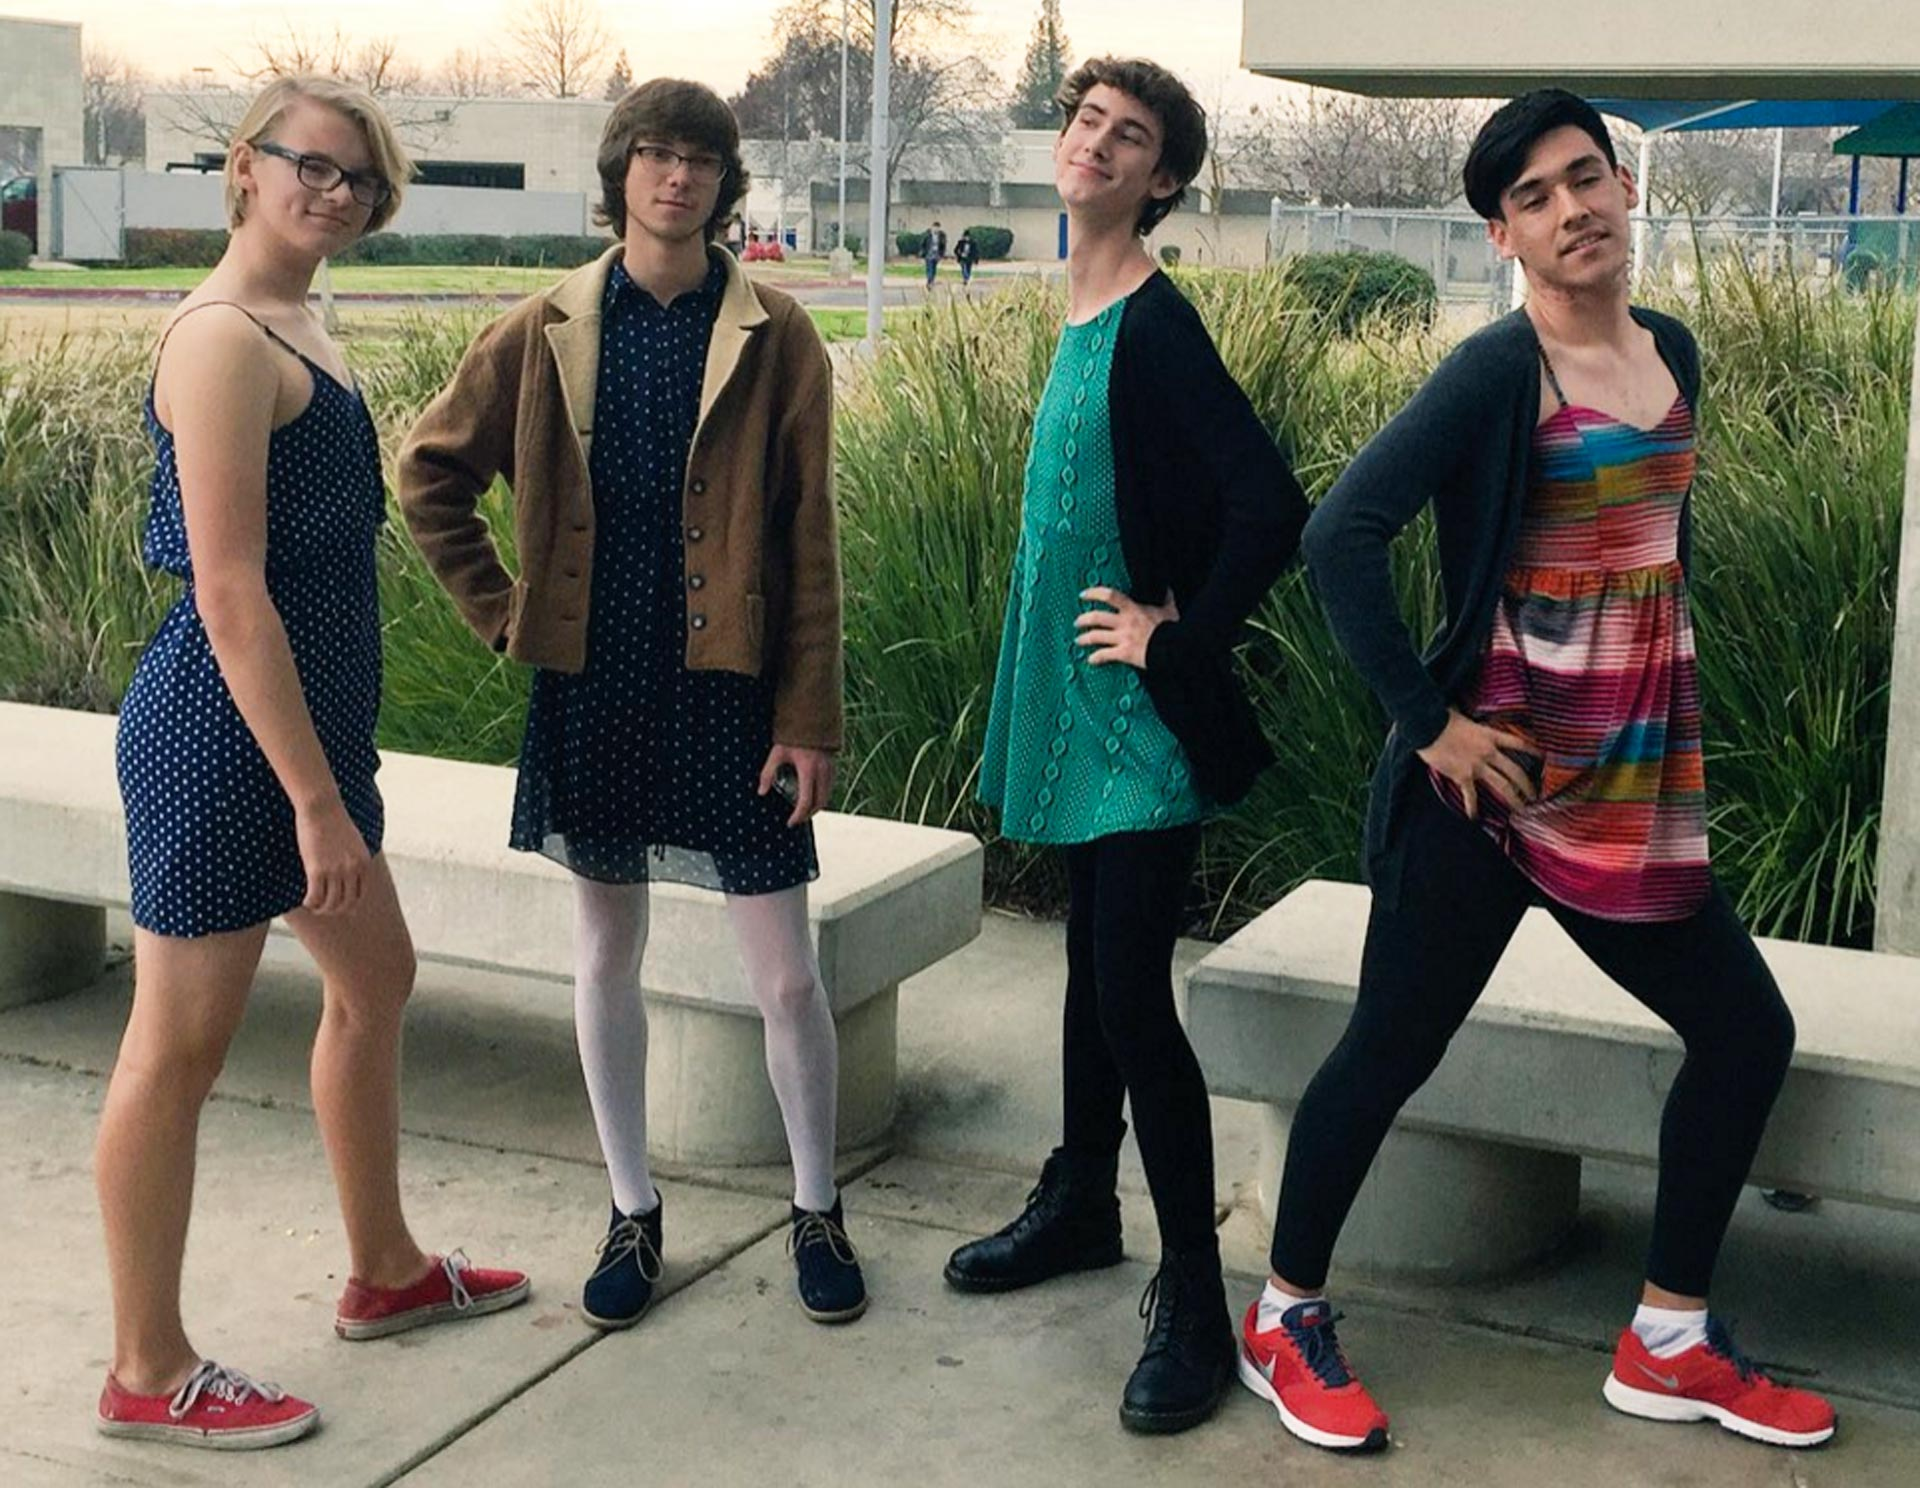 750bbb0e6c7 Students Defy Gender Norms to Protest Clovis Dress Code